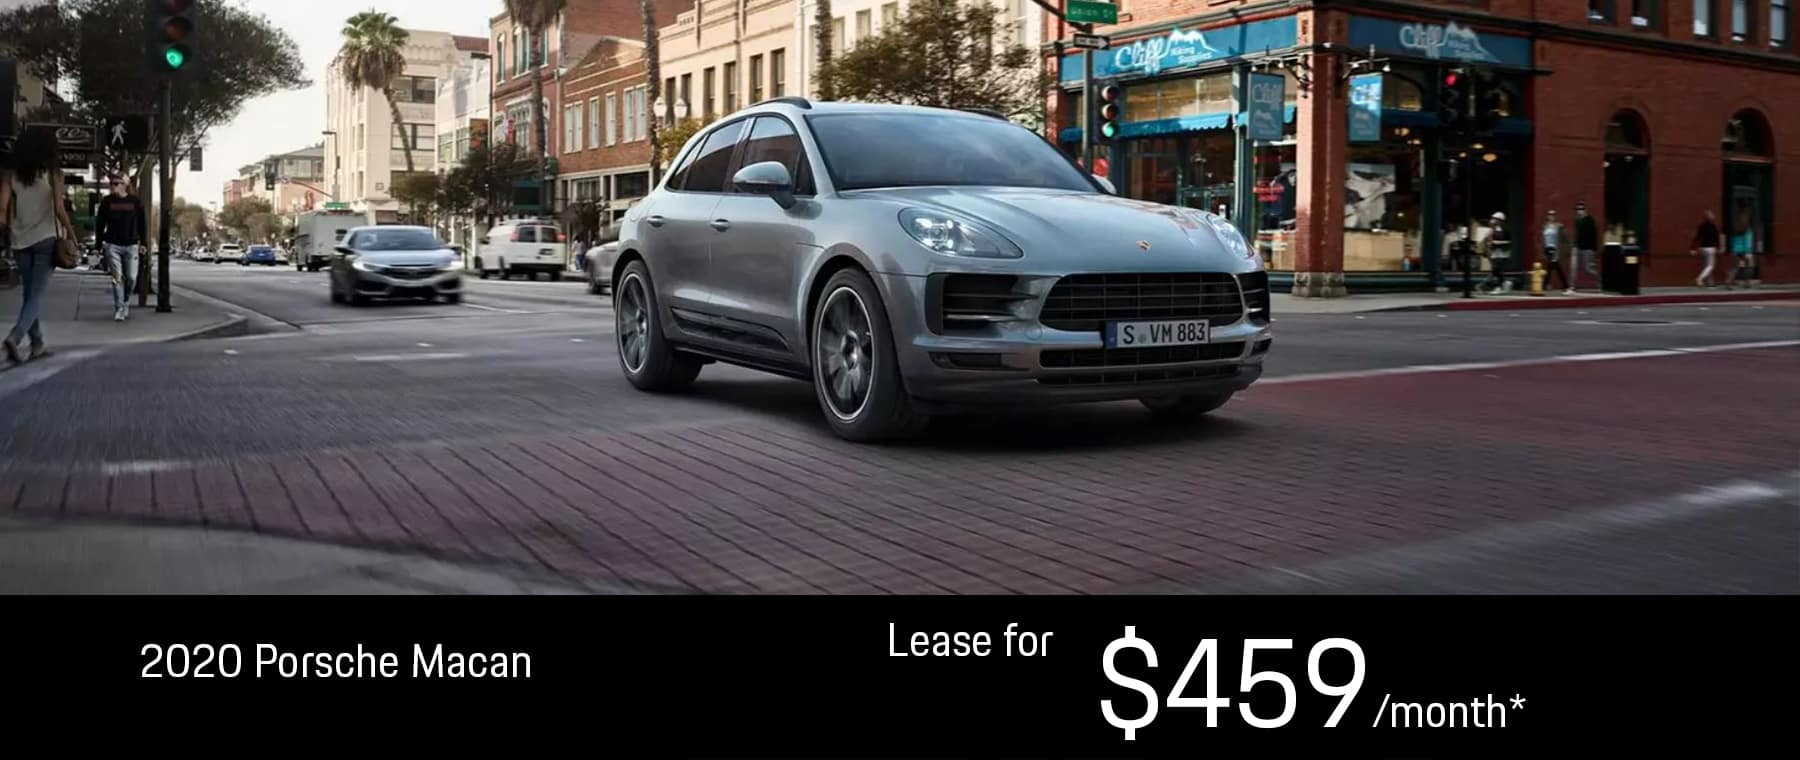 Oct 2020 Macan Lease